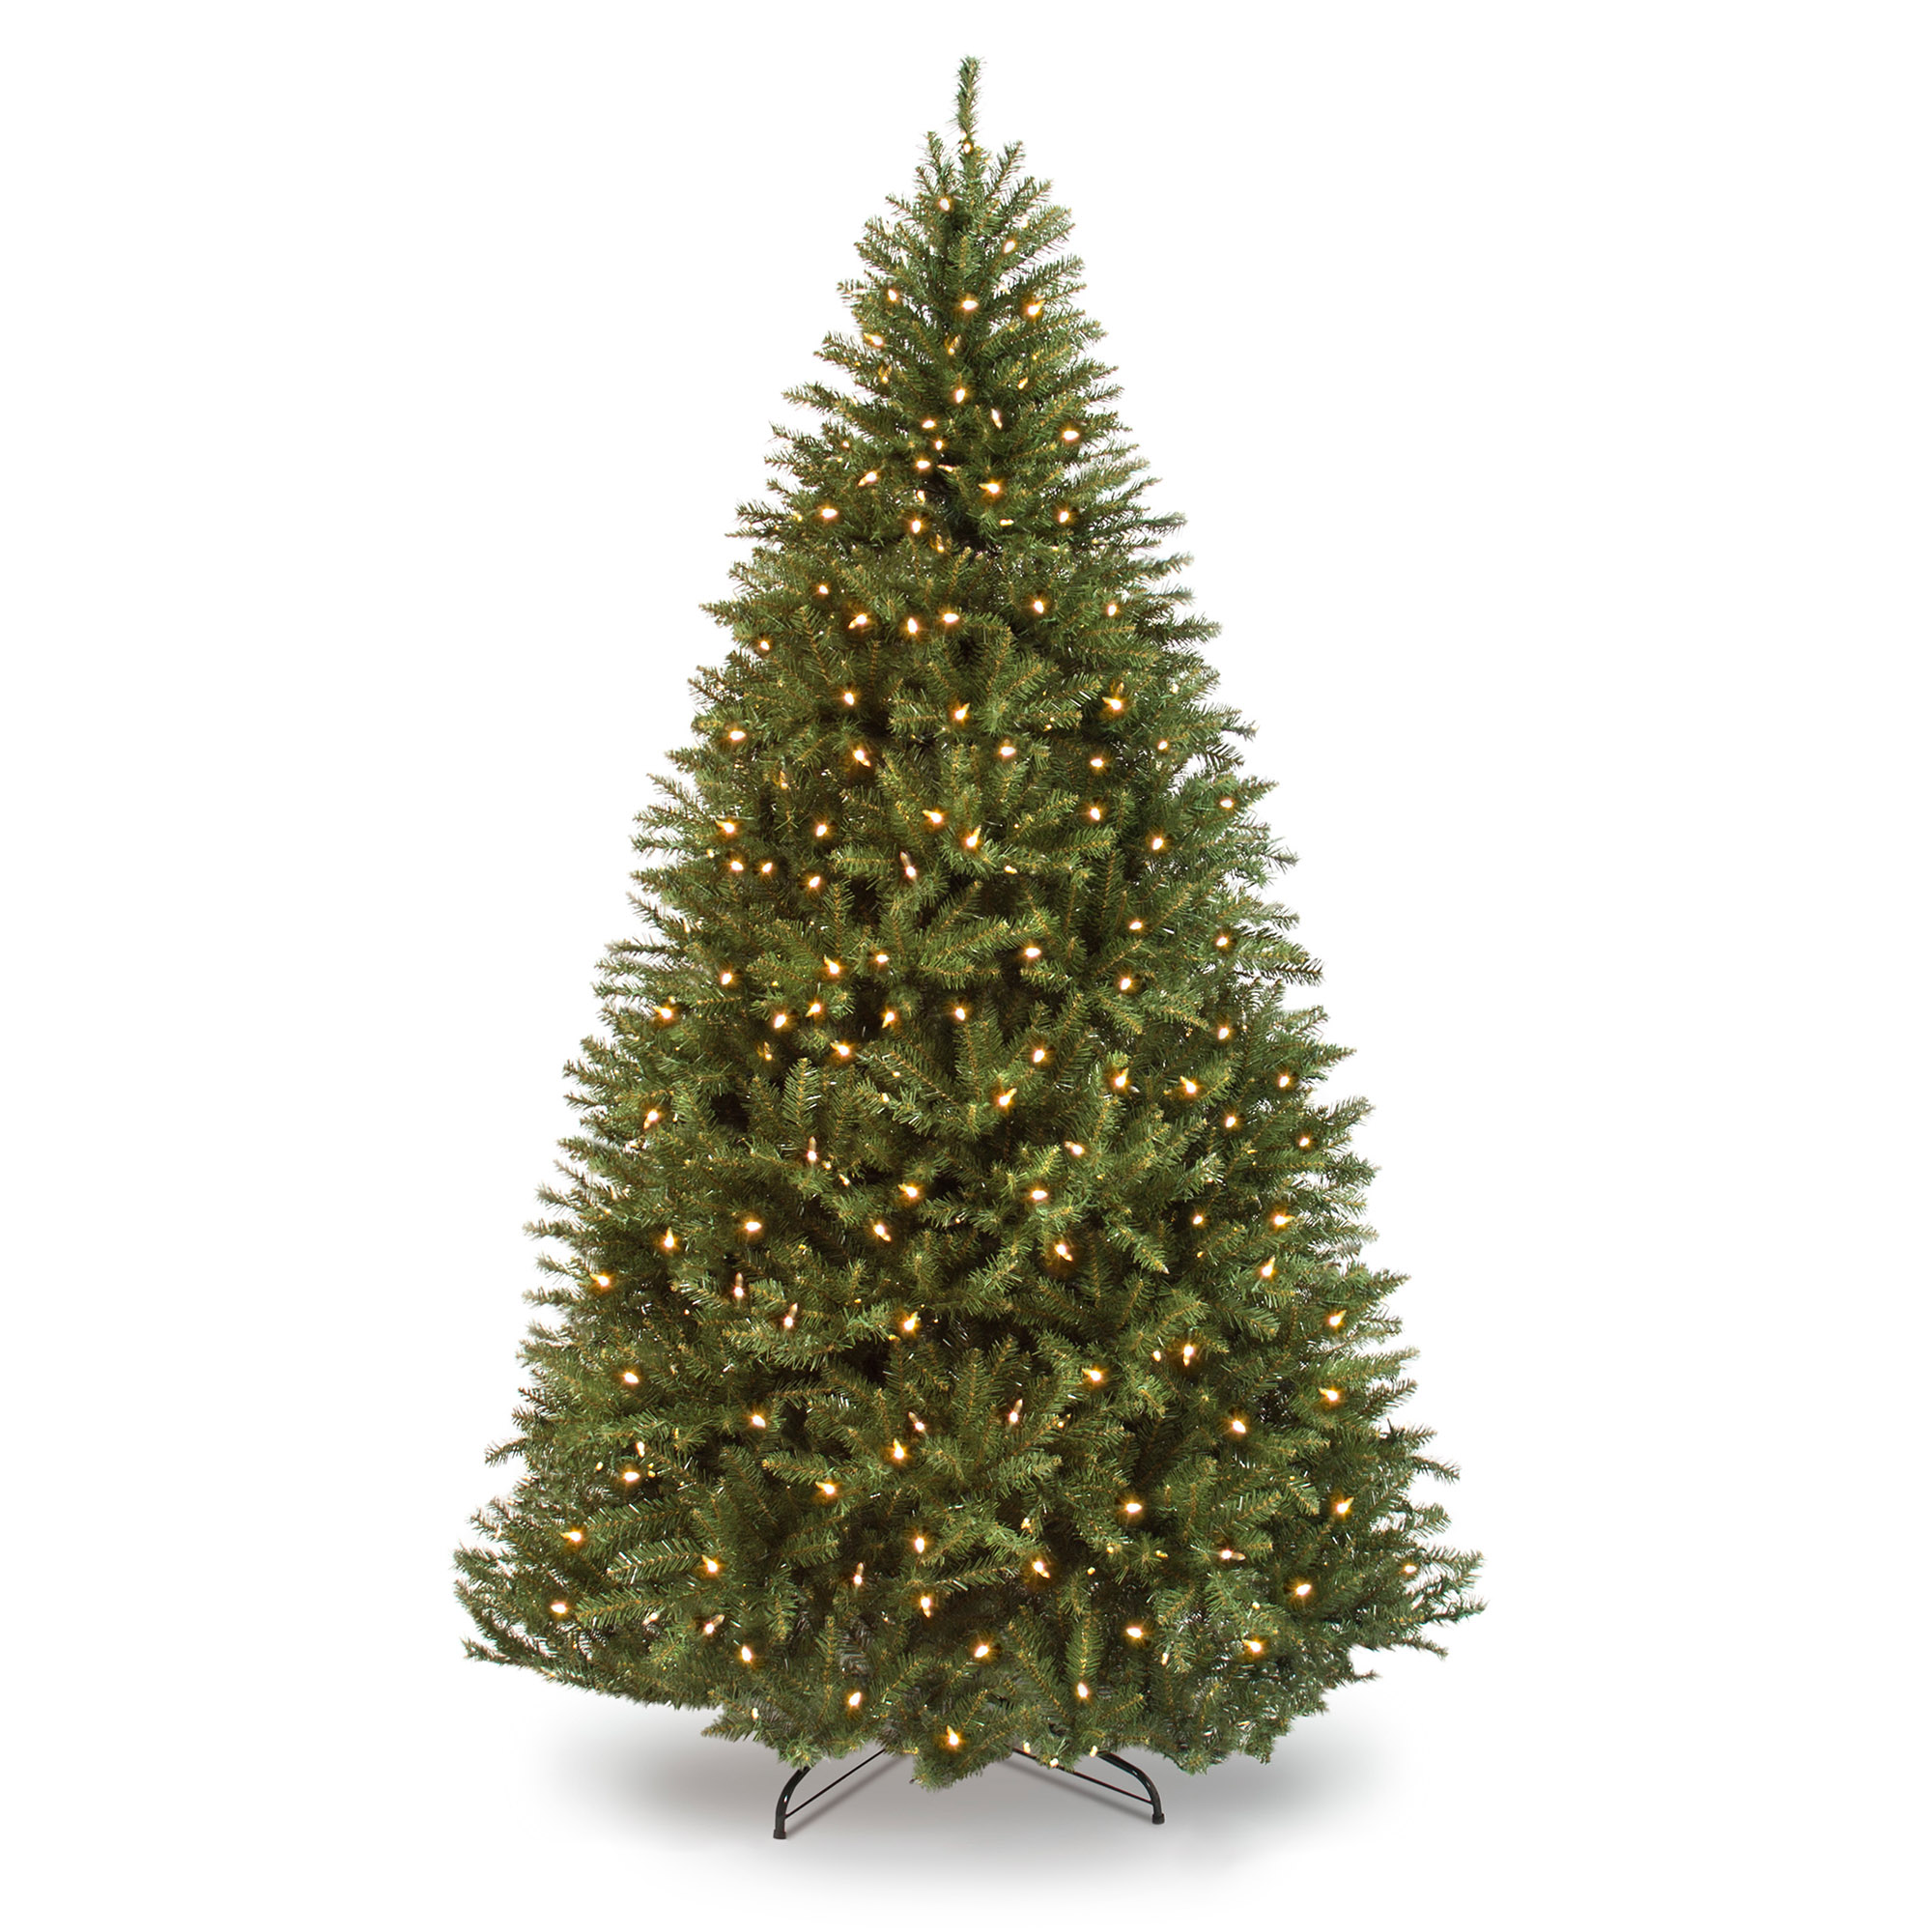 Best Choice Products 9ft Premium Pre-Lit Hinged Douglas Full Fir Artificial Christmas Tree Holiday Decoration w/ 3594 Branch Tips, 1000 Warm White Lights, Easy Assembly, Foldable Metal Stand - Green